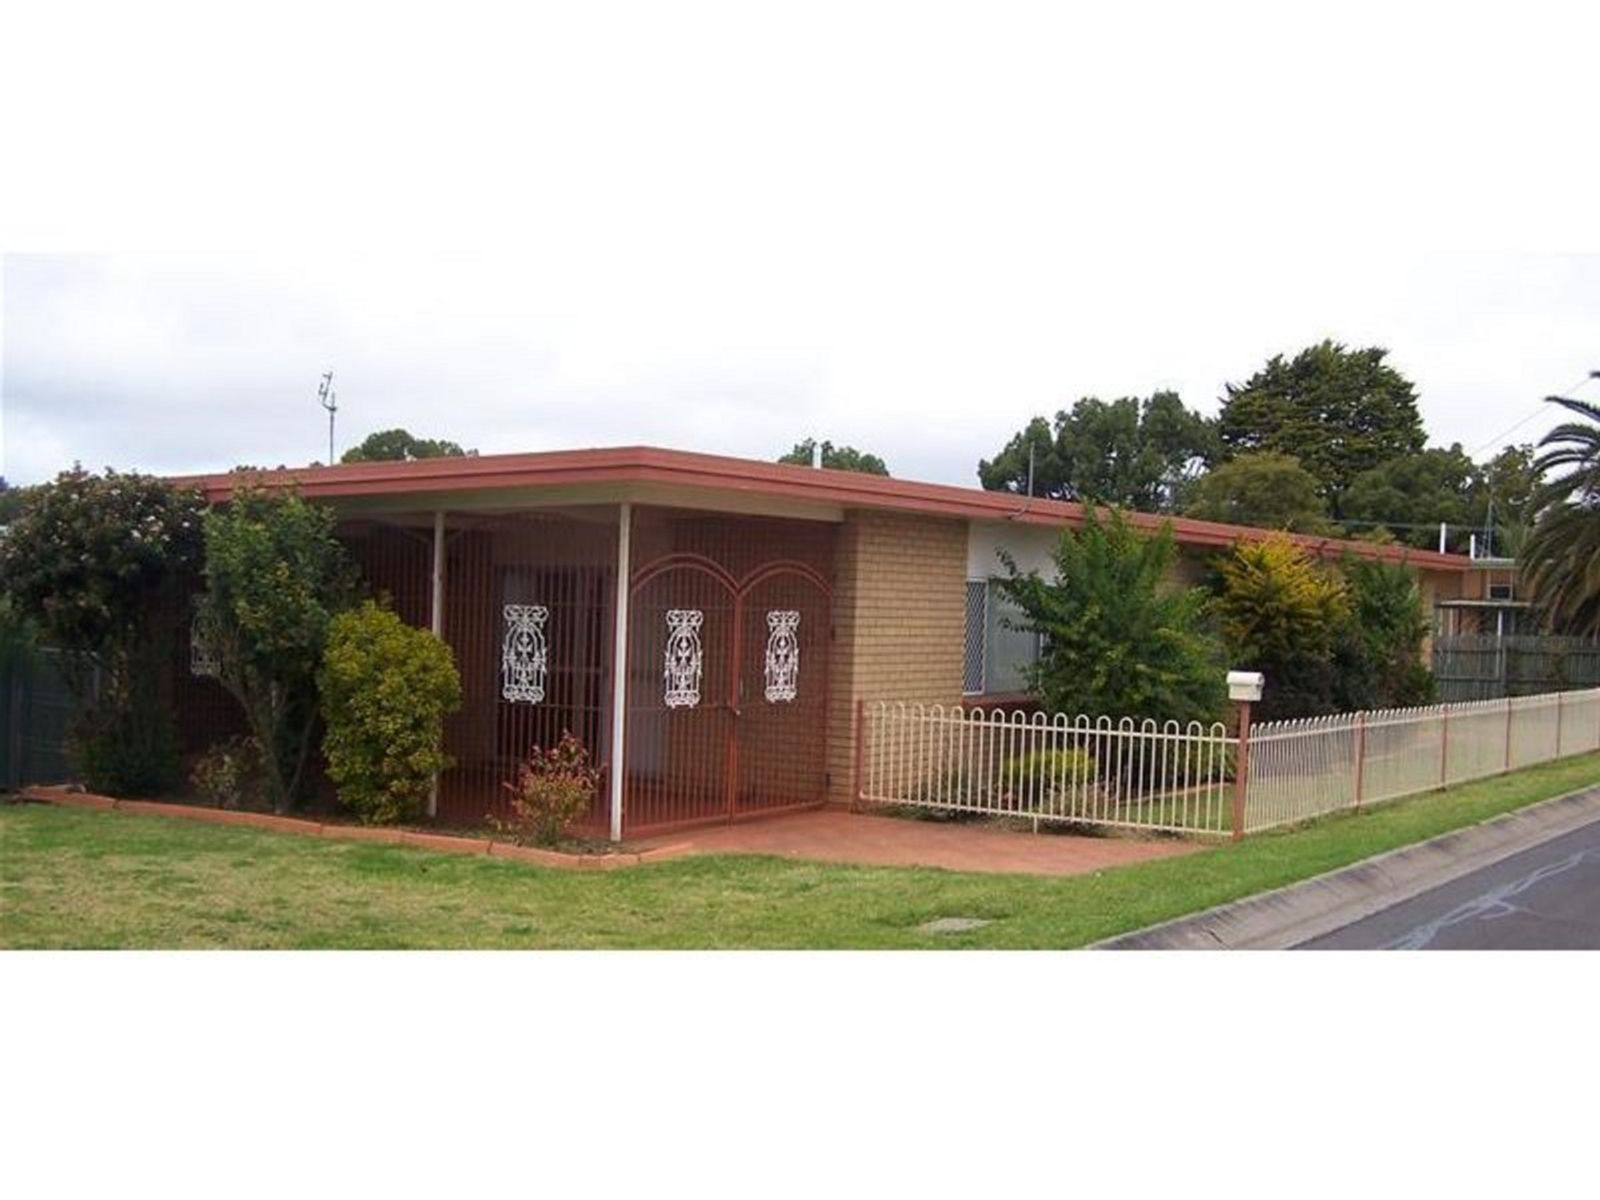 2A Park Lane, Toowoomba City, QLD 4350